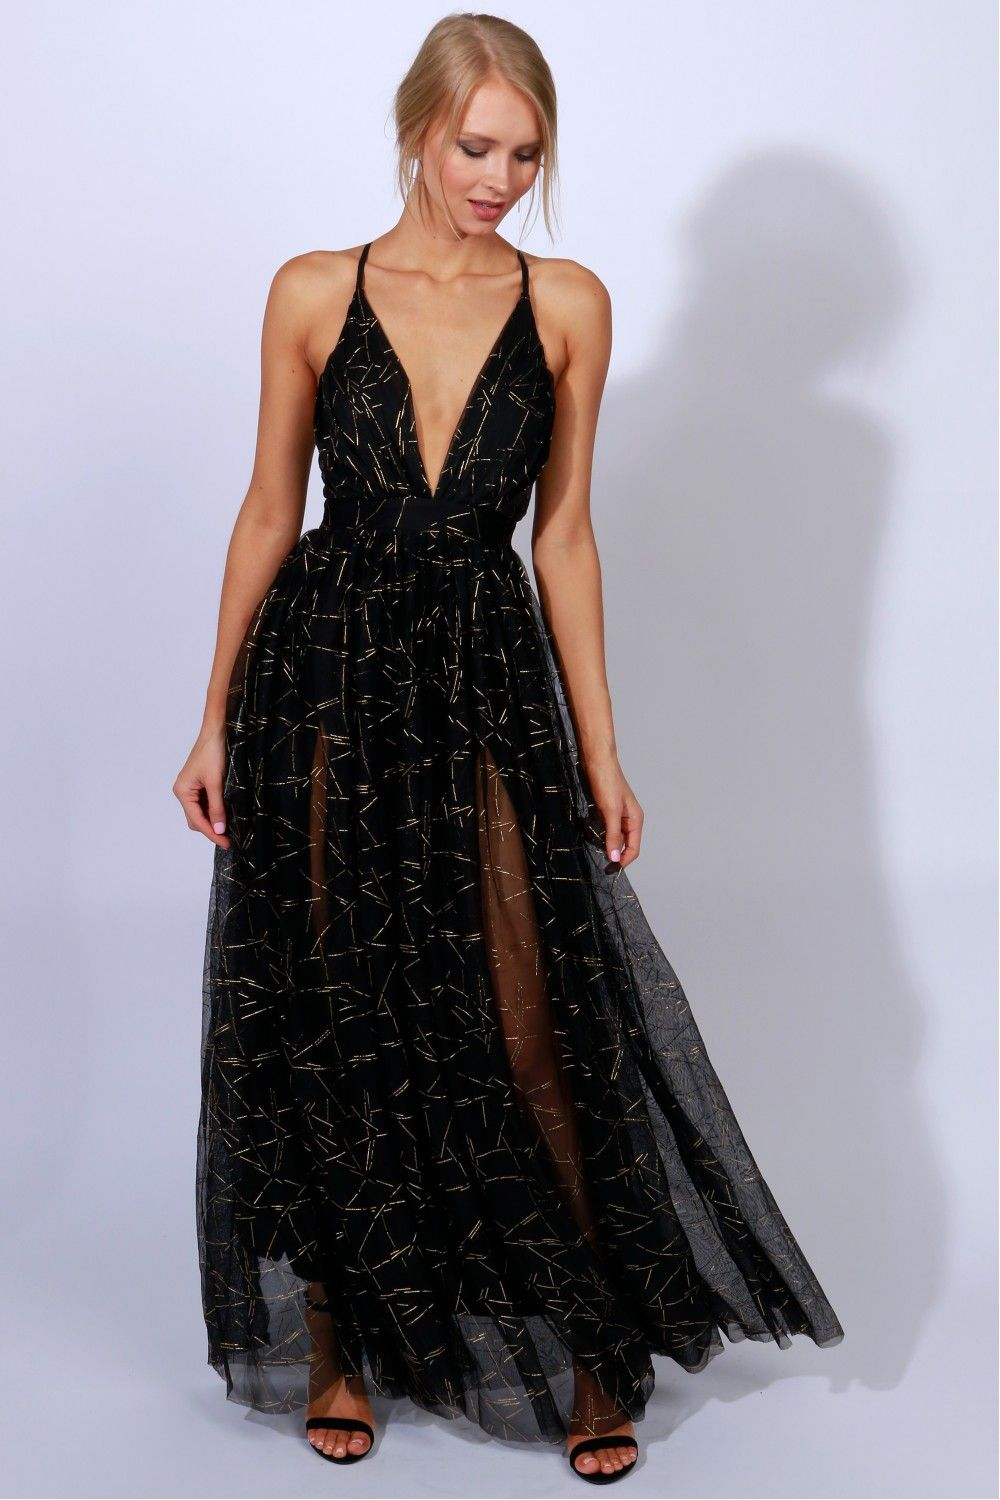 Gown To Party Detailed Maxi Black Gold Black Lace Dress Long Simple Prom Dress Gowns [ 1500 x 1000 Pixel ]